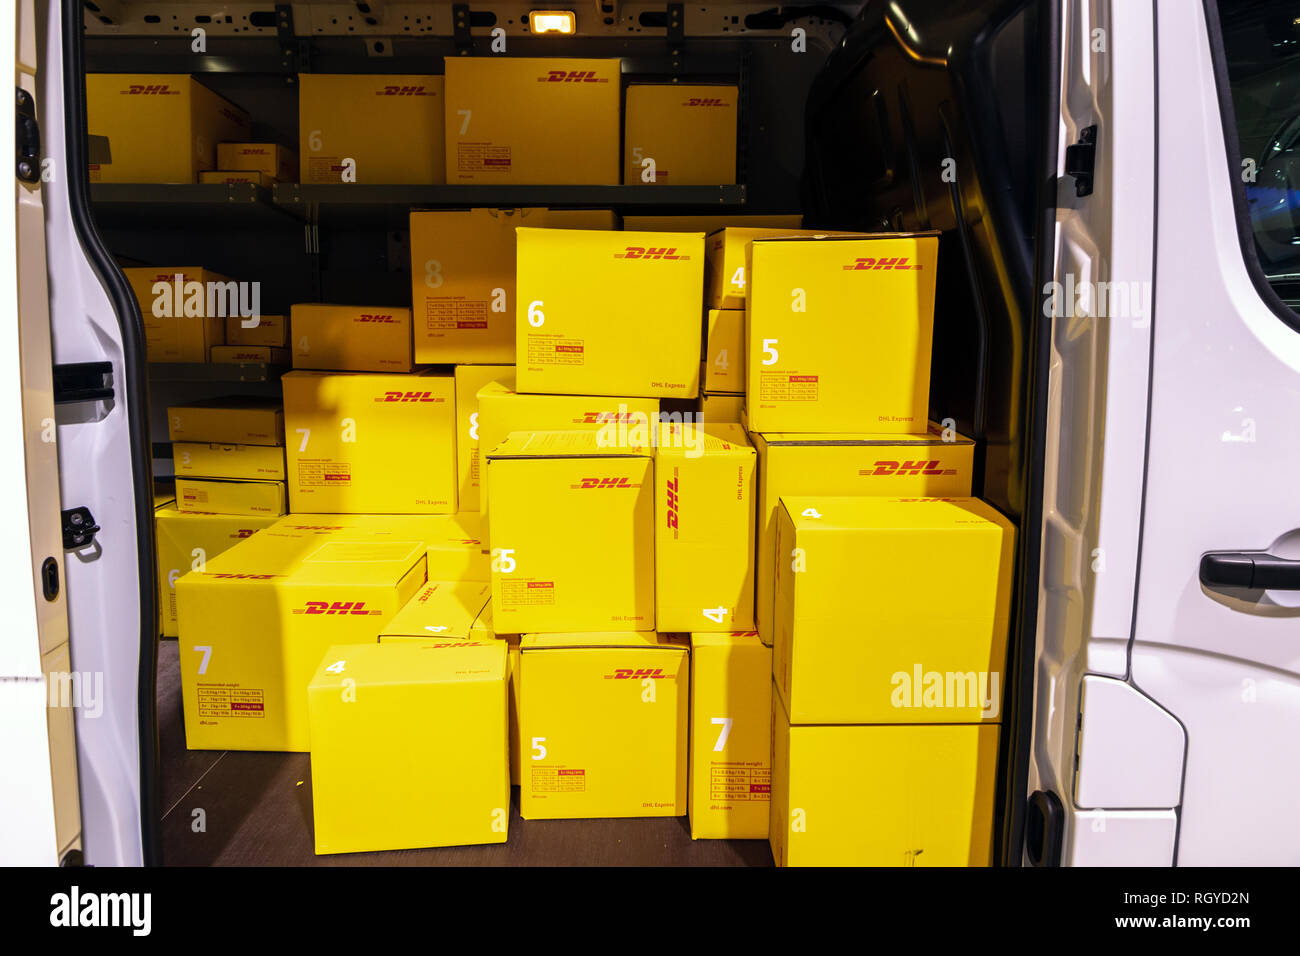 BRUSSELS - JAN 18, 2019: DHL delivery van showcased at the 97th Brussels Motor Show 2019 Autosalon. - Stock Image